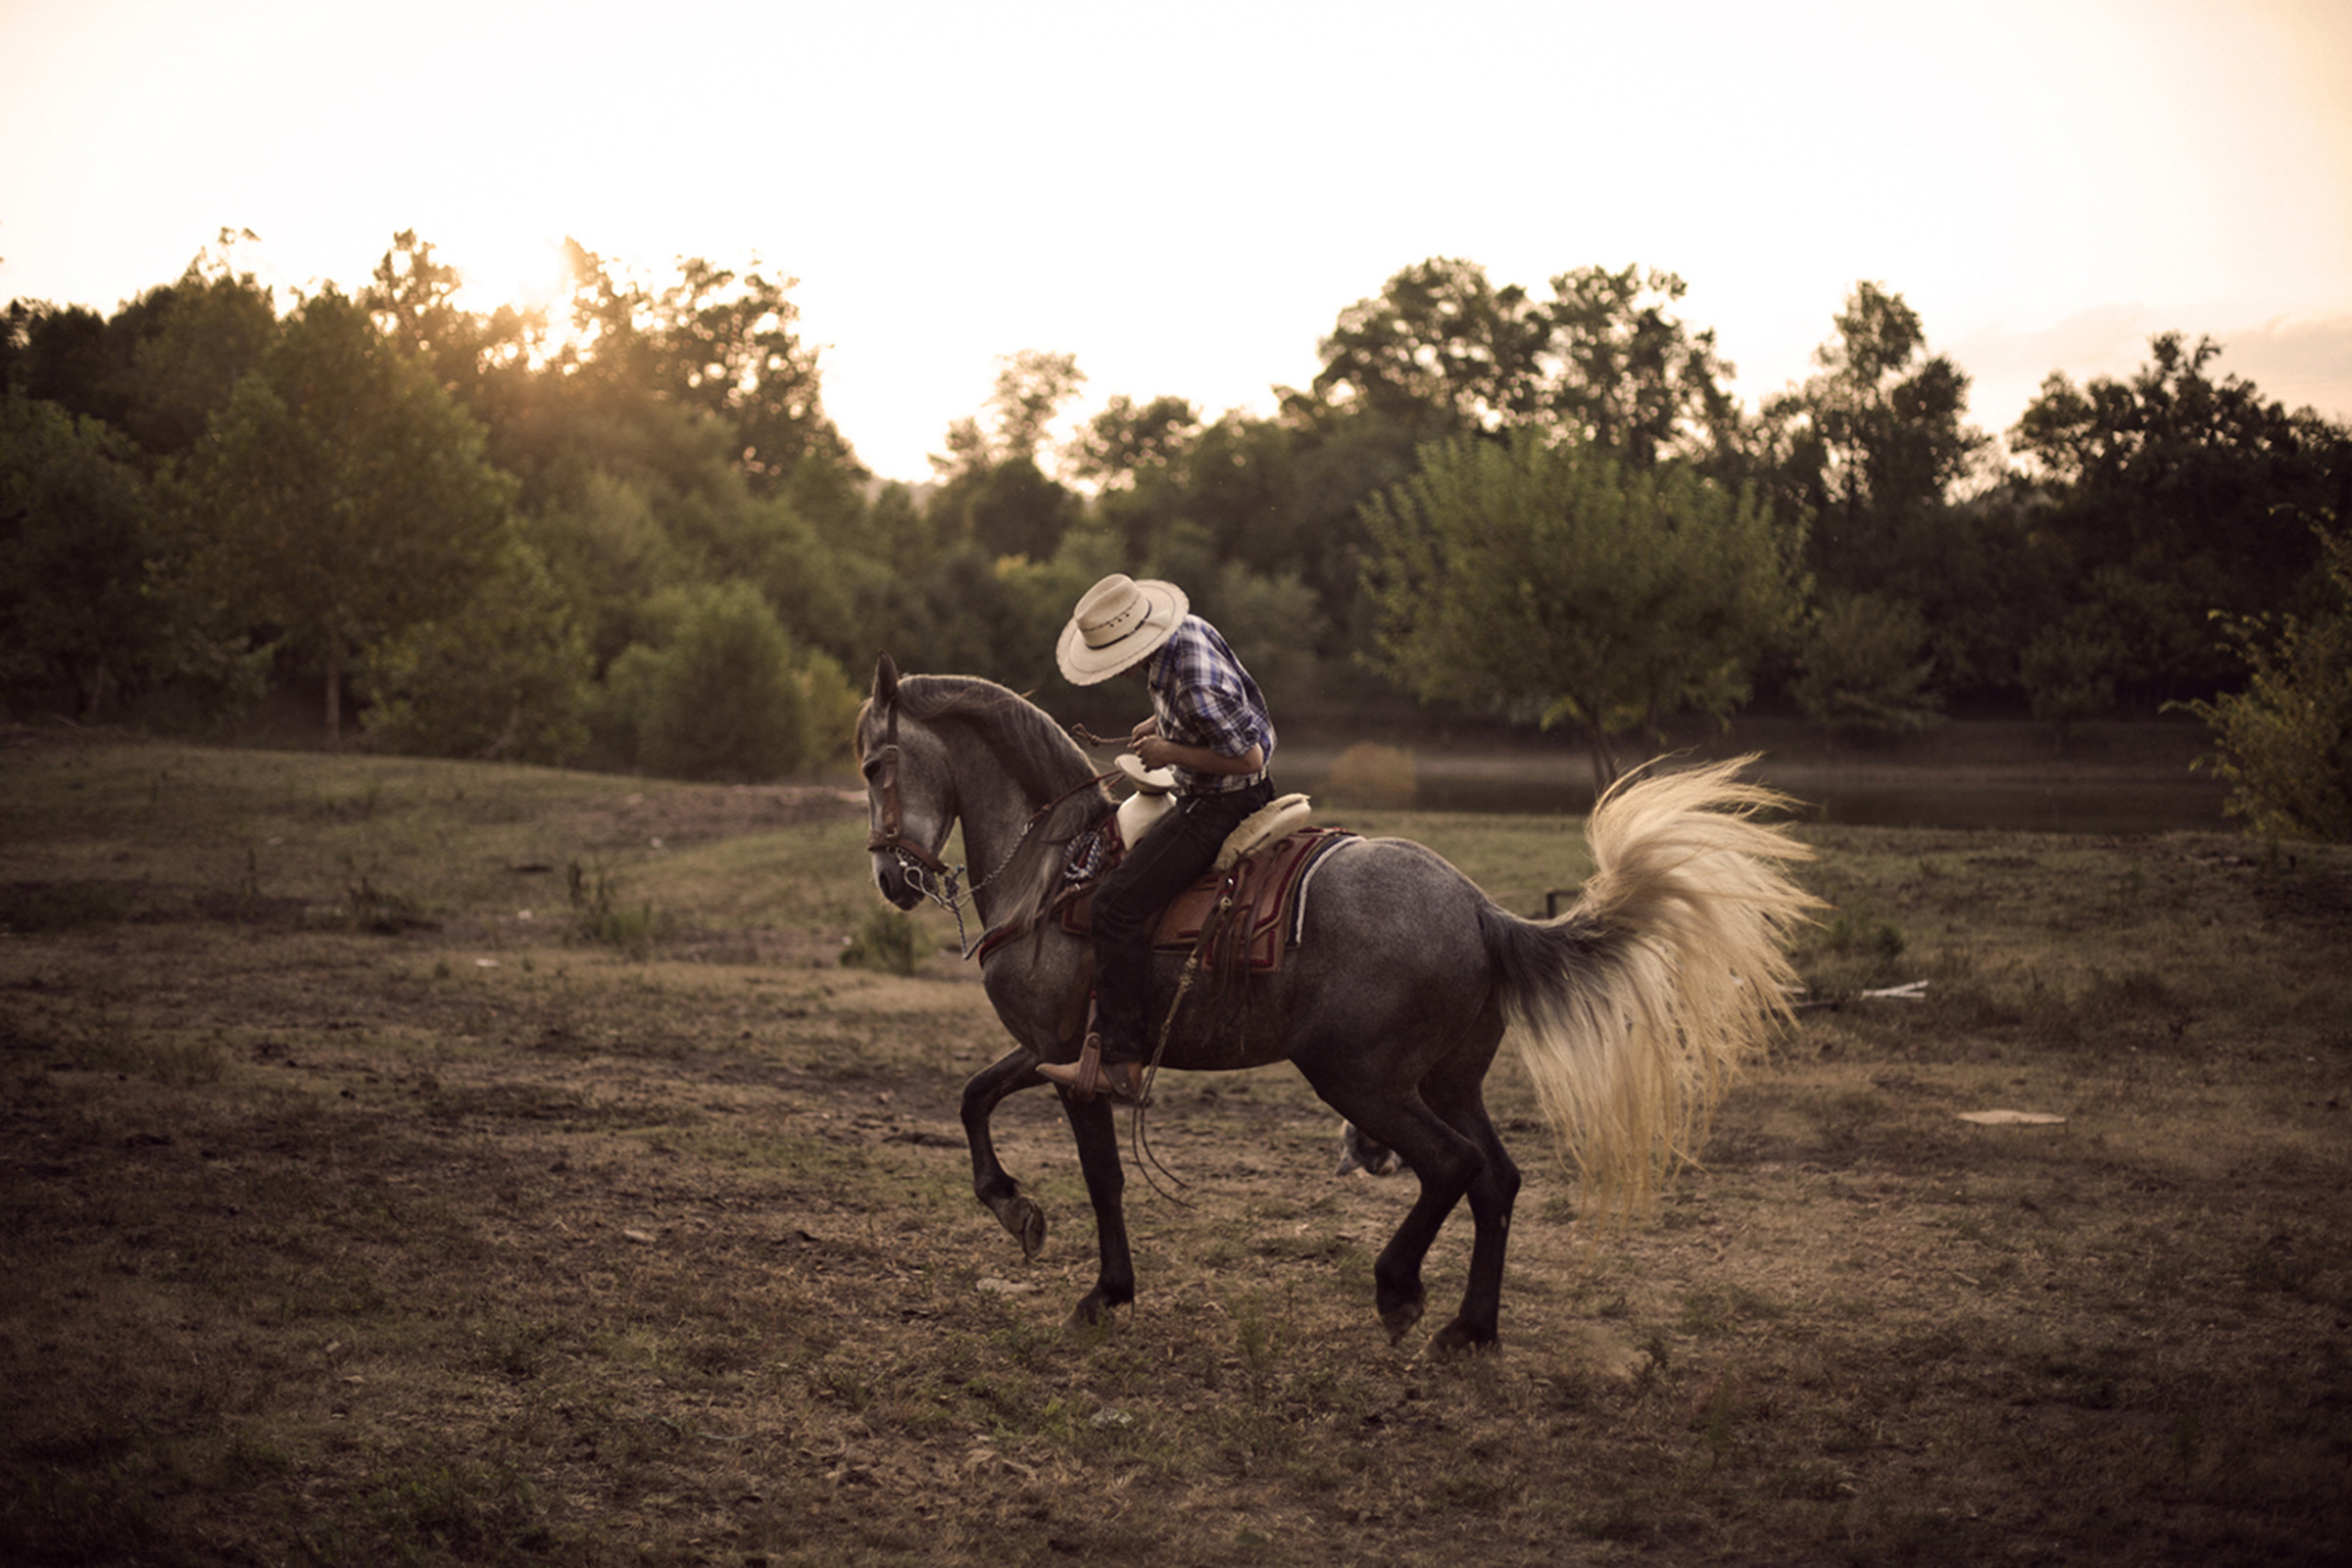 Marcos Espinoza, 17, goes for his daily ride on his favorite horse, Maximo, at the family ranch in Bowling Green, Kentucky. Marcos is the son of immigrant parents from Guatemala and Mexico, and he wants to carry on the legacy of his culture in the United States. (Photo by Betina Garcia/GroundTruth)